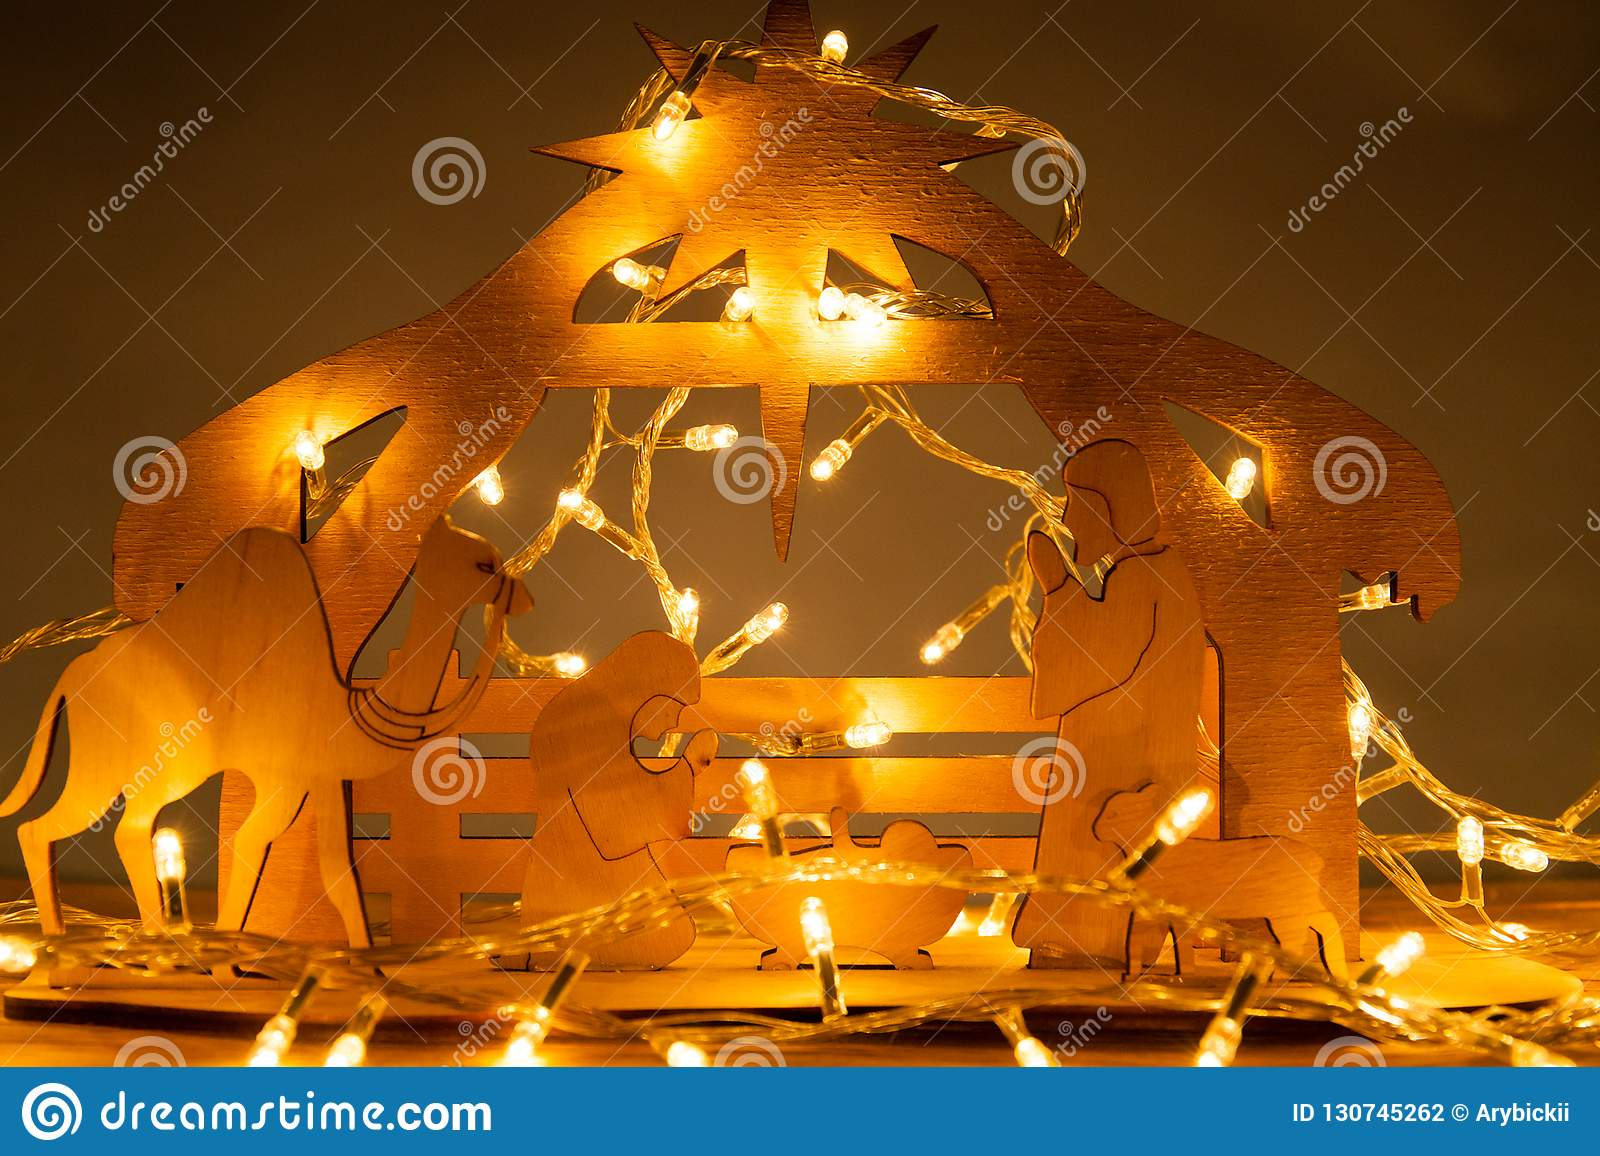 Christmas Nativity Scene of baby Jesus in the manger with Mary and Joseph in silhouette surrounded by the animals